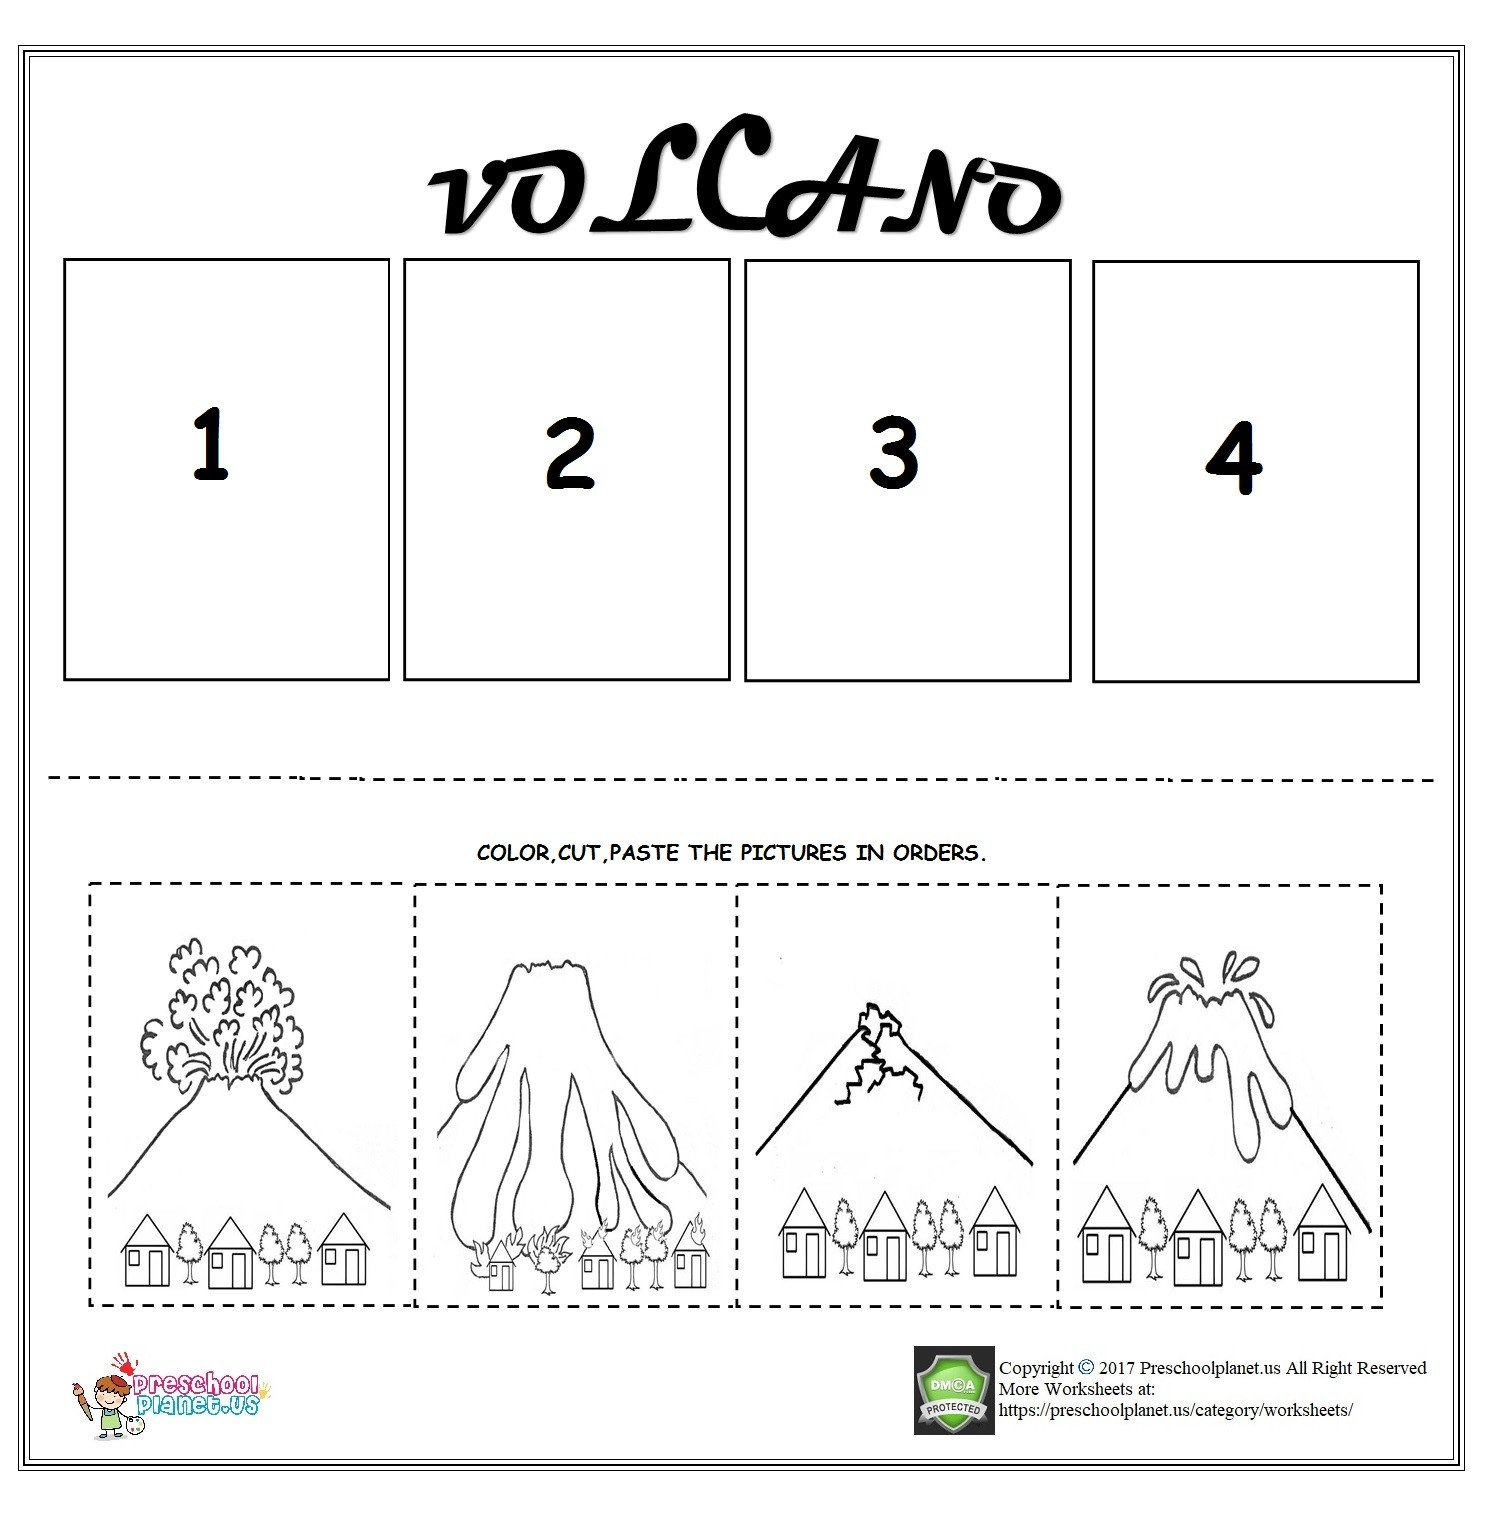 Sequencing Picture Worksheets Volcano Sequencing Worksheet for Kids – Preschoolplanet